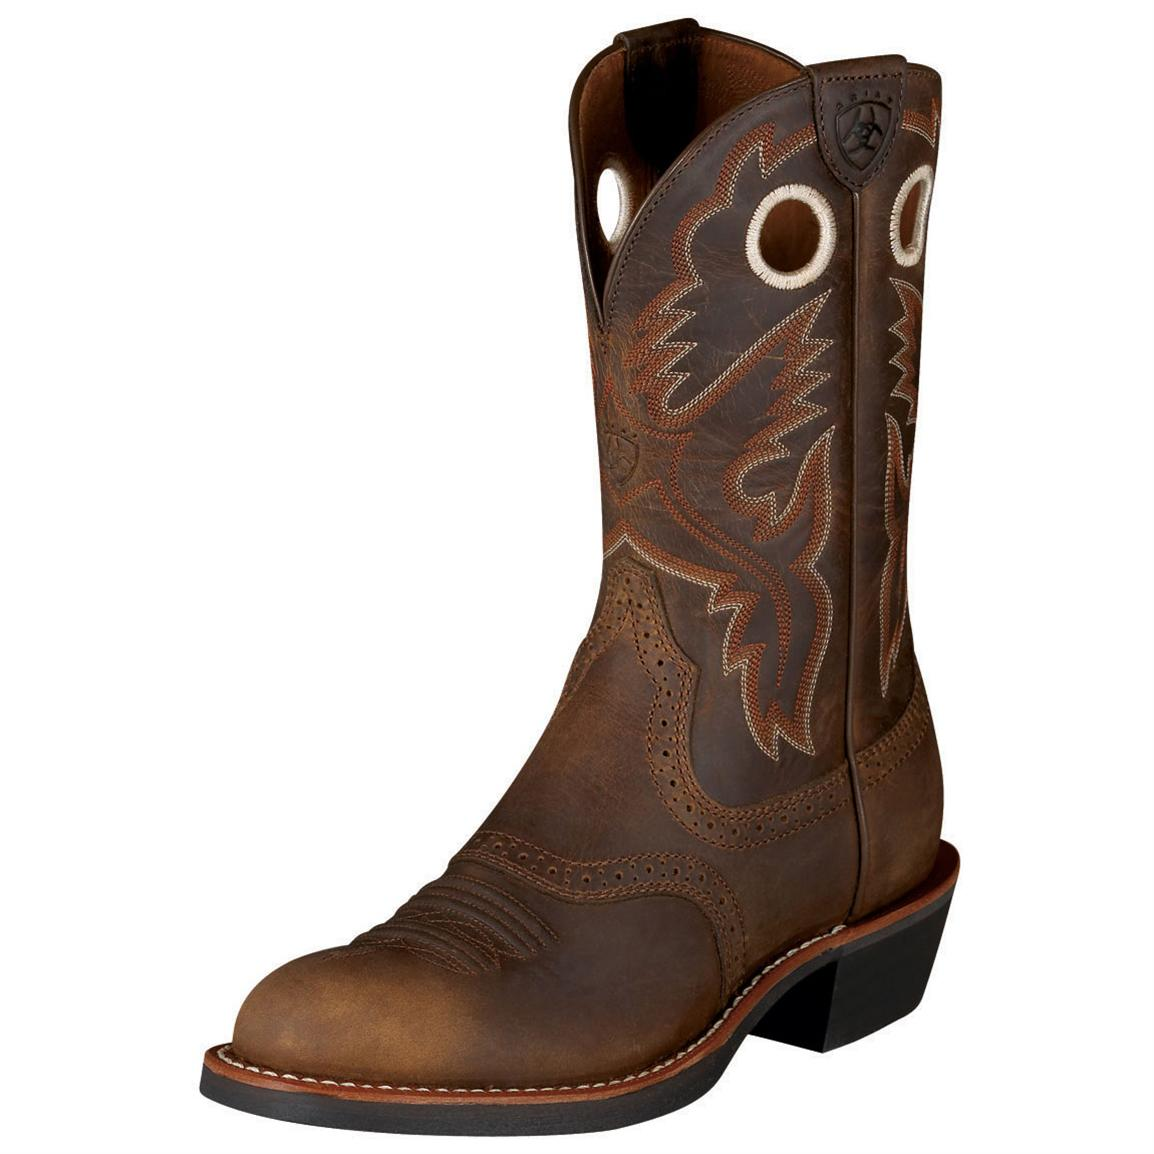 "Women's Ariat 11"" Heritage Roughstock Boots, Antique Brown"